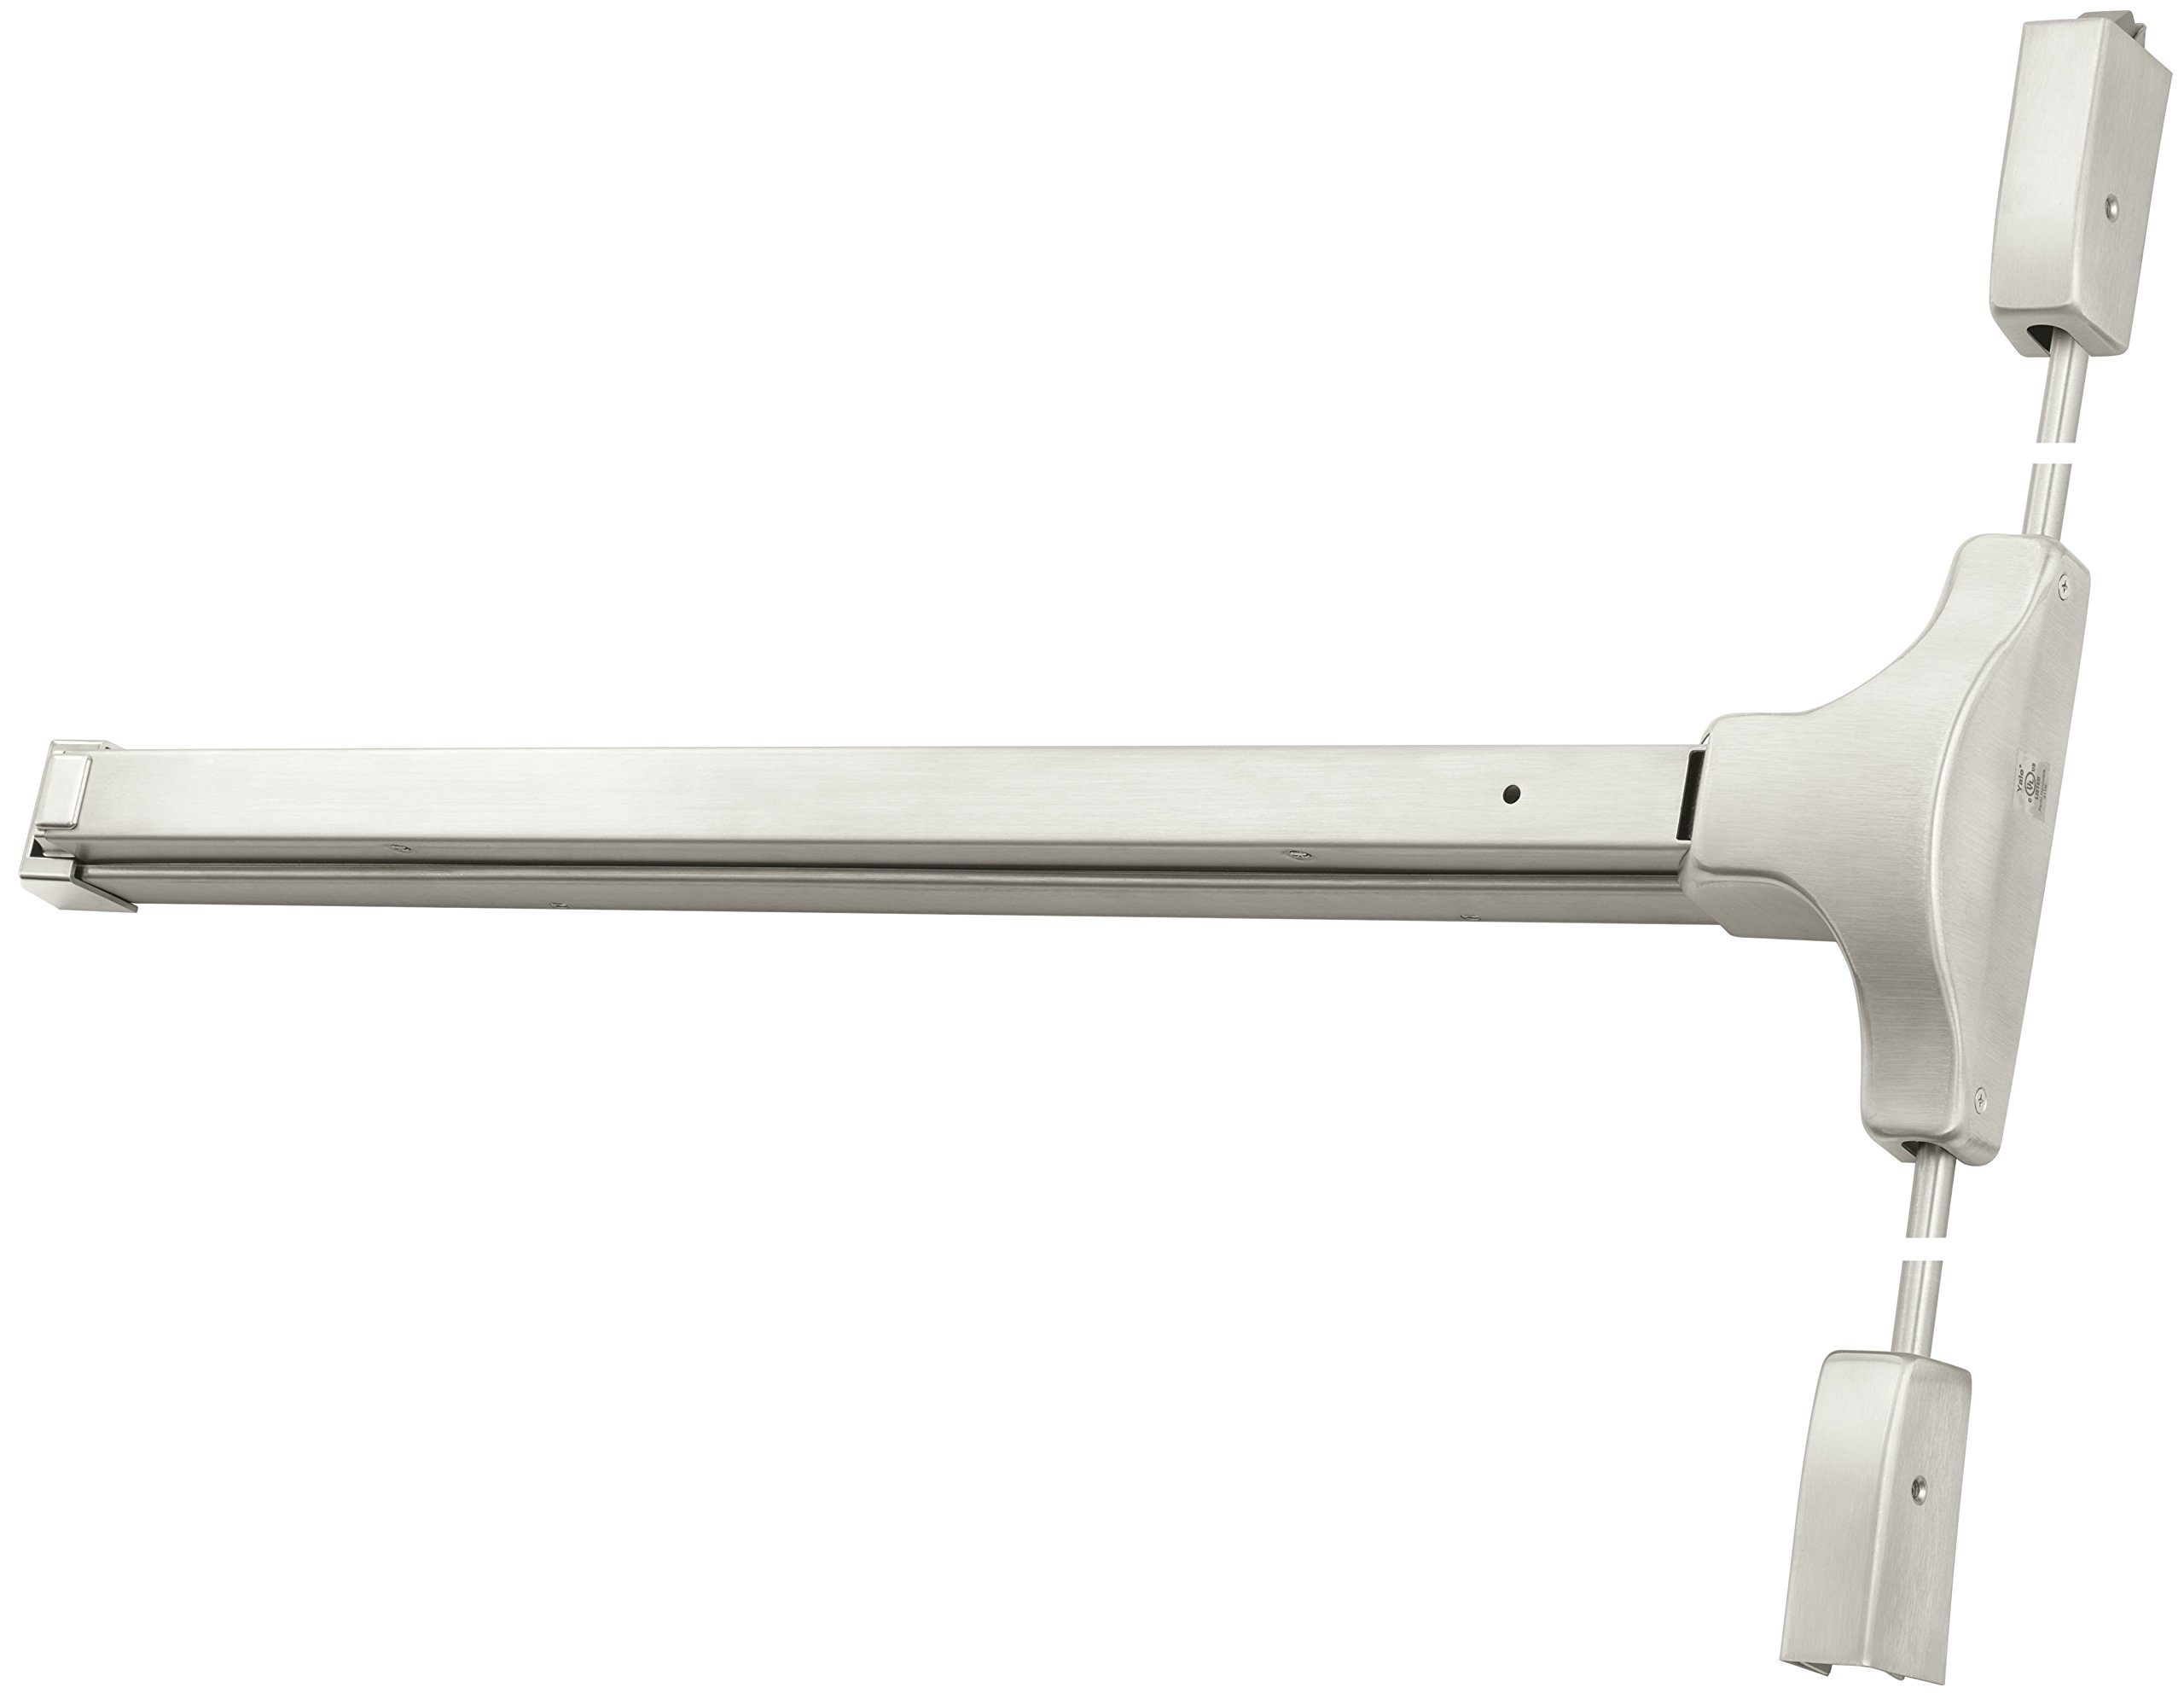 Shipped RHR Field Reversible 695 Satin Bronze Painted Yale 1810-36 x 695 x RHR 1810 Surface Vertical Rod Exit Device